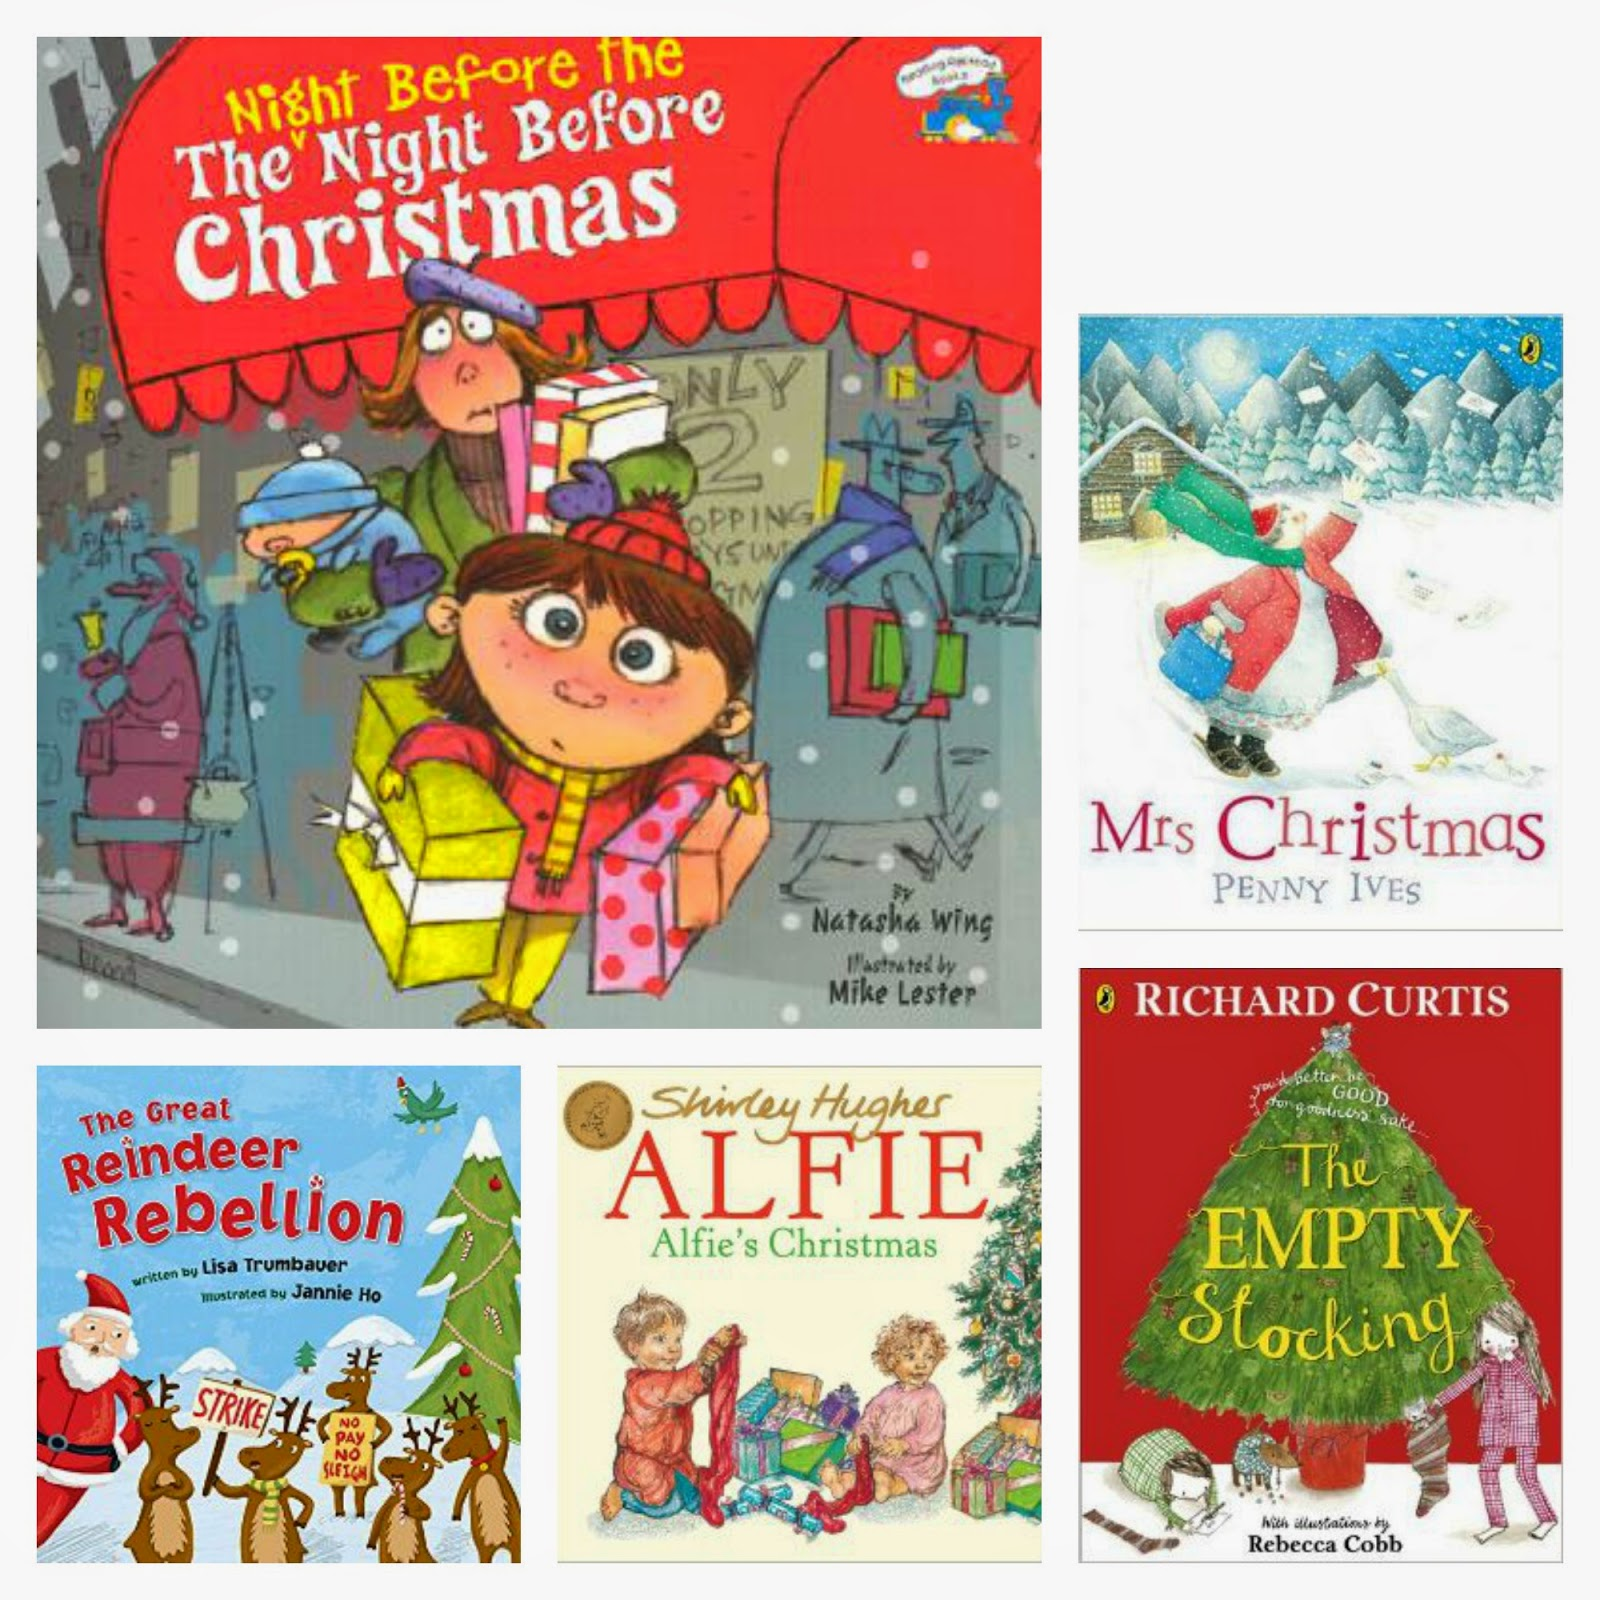 25 of the Best Christmas Books – *Bookclub Special (Part 4)* | V. I. BOOKCLUB